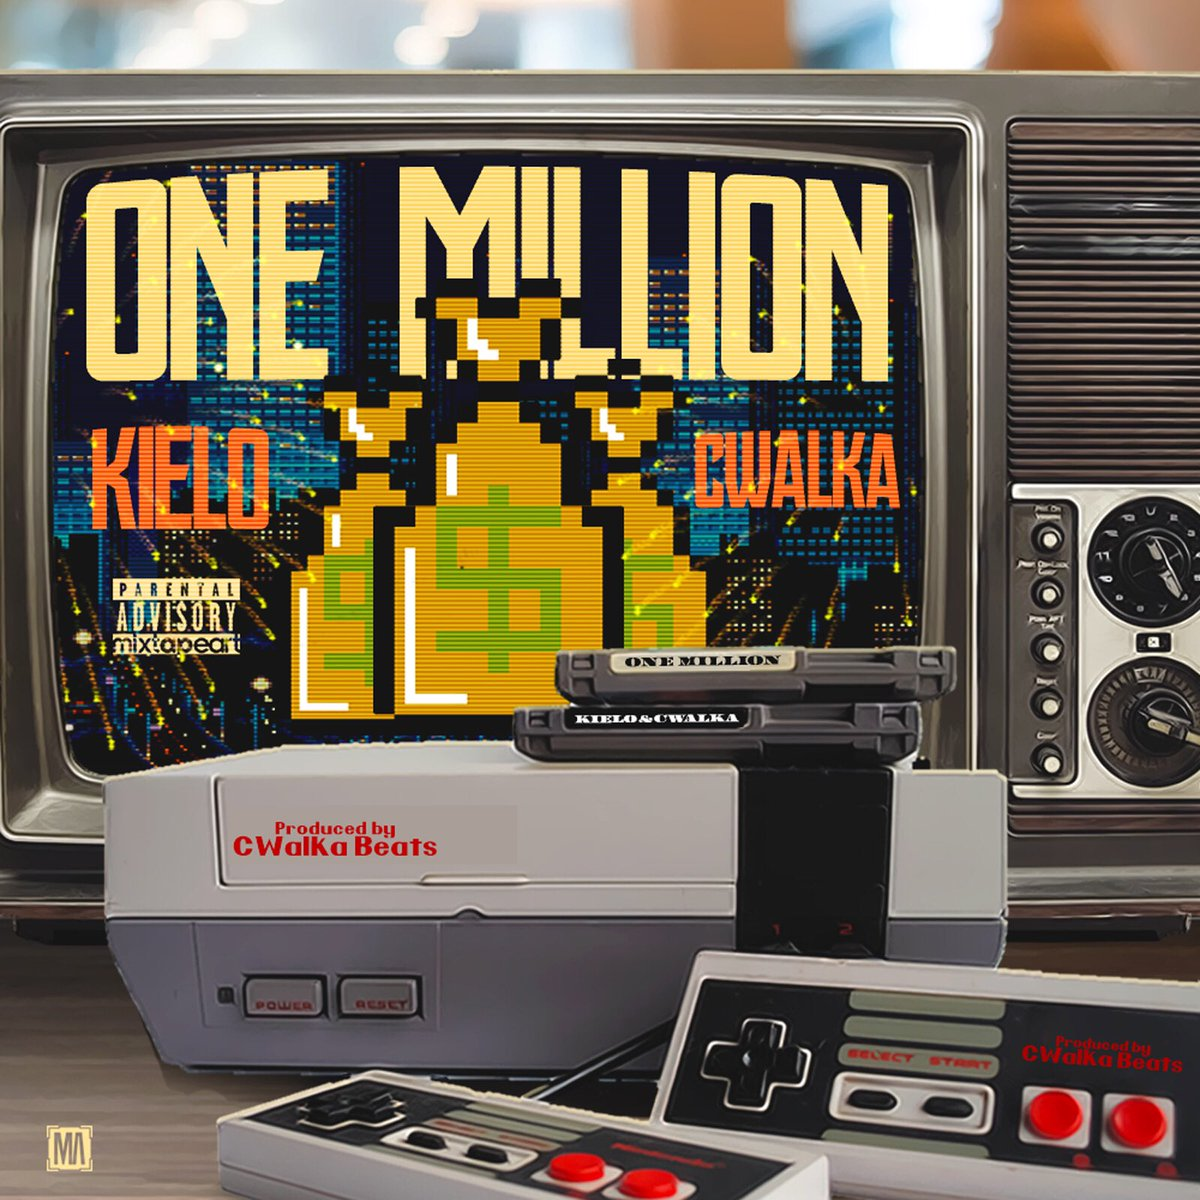 #onemillion drops today... stay tuned #edm #texasedm #edmlife #newmusic #hiphop #electro<br>http://pic.twitter.com/ORrUJ4i5Jz